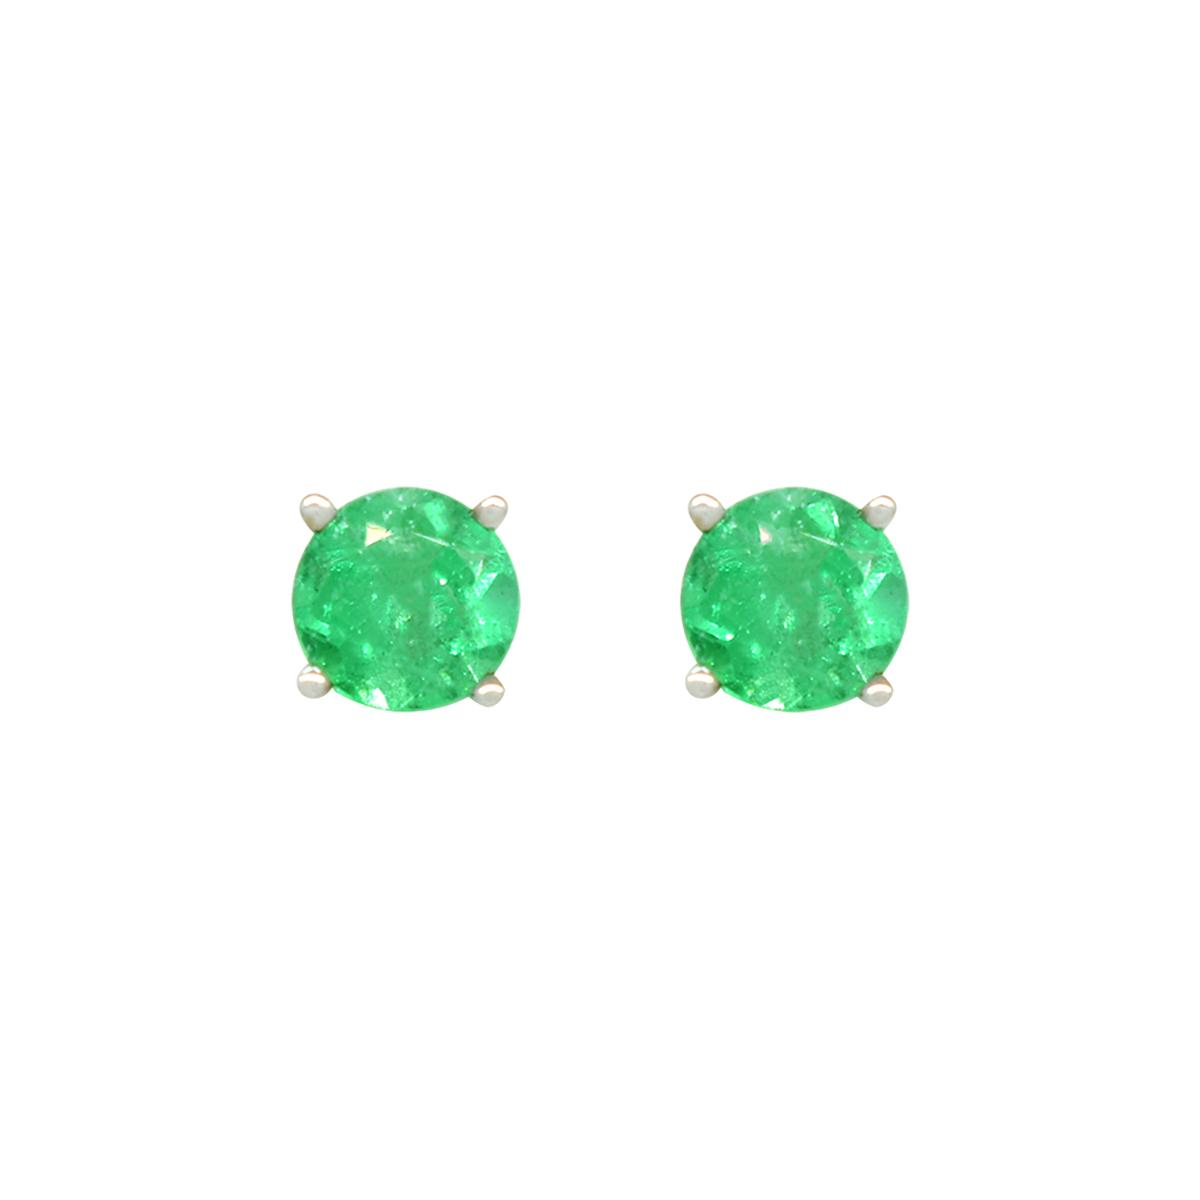 emerald-stud-earrings-in-18k-white-gold-classic-prong-setting